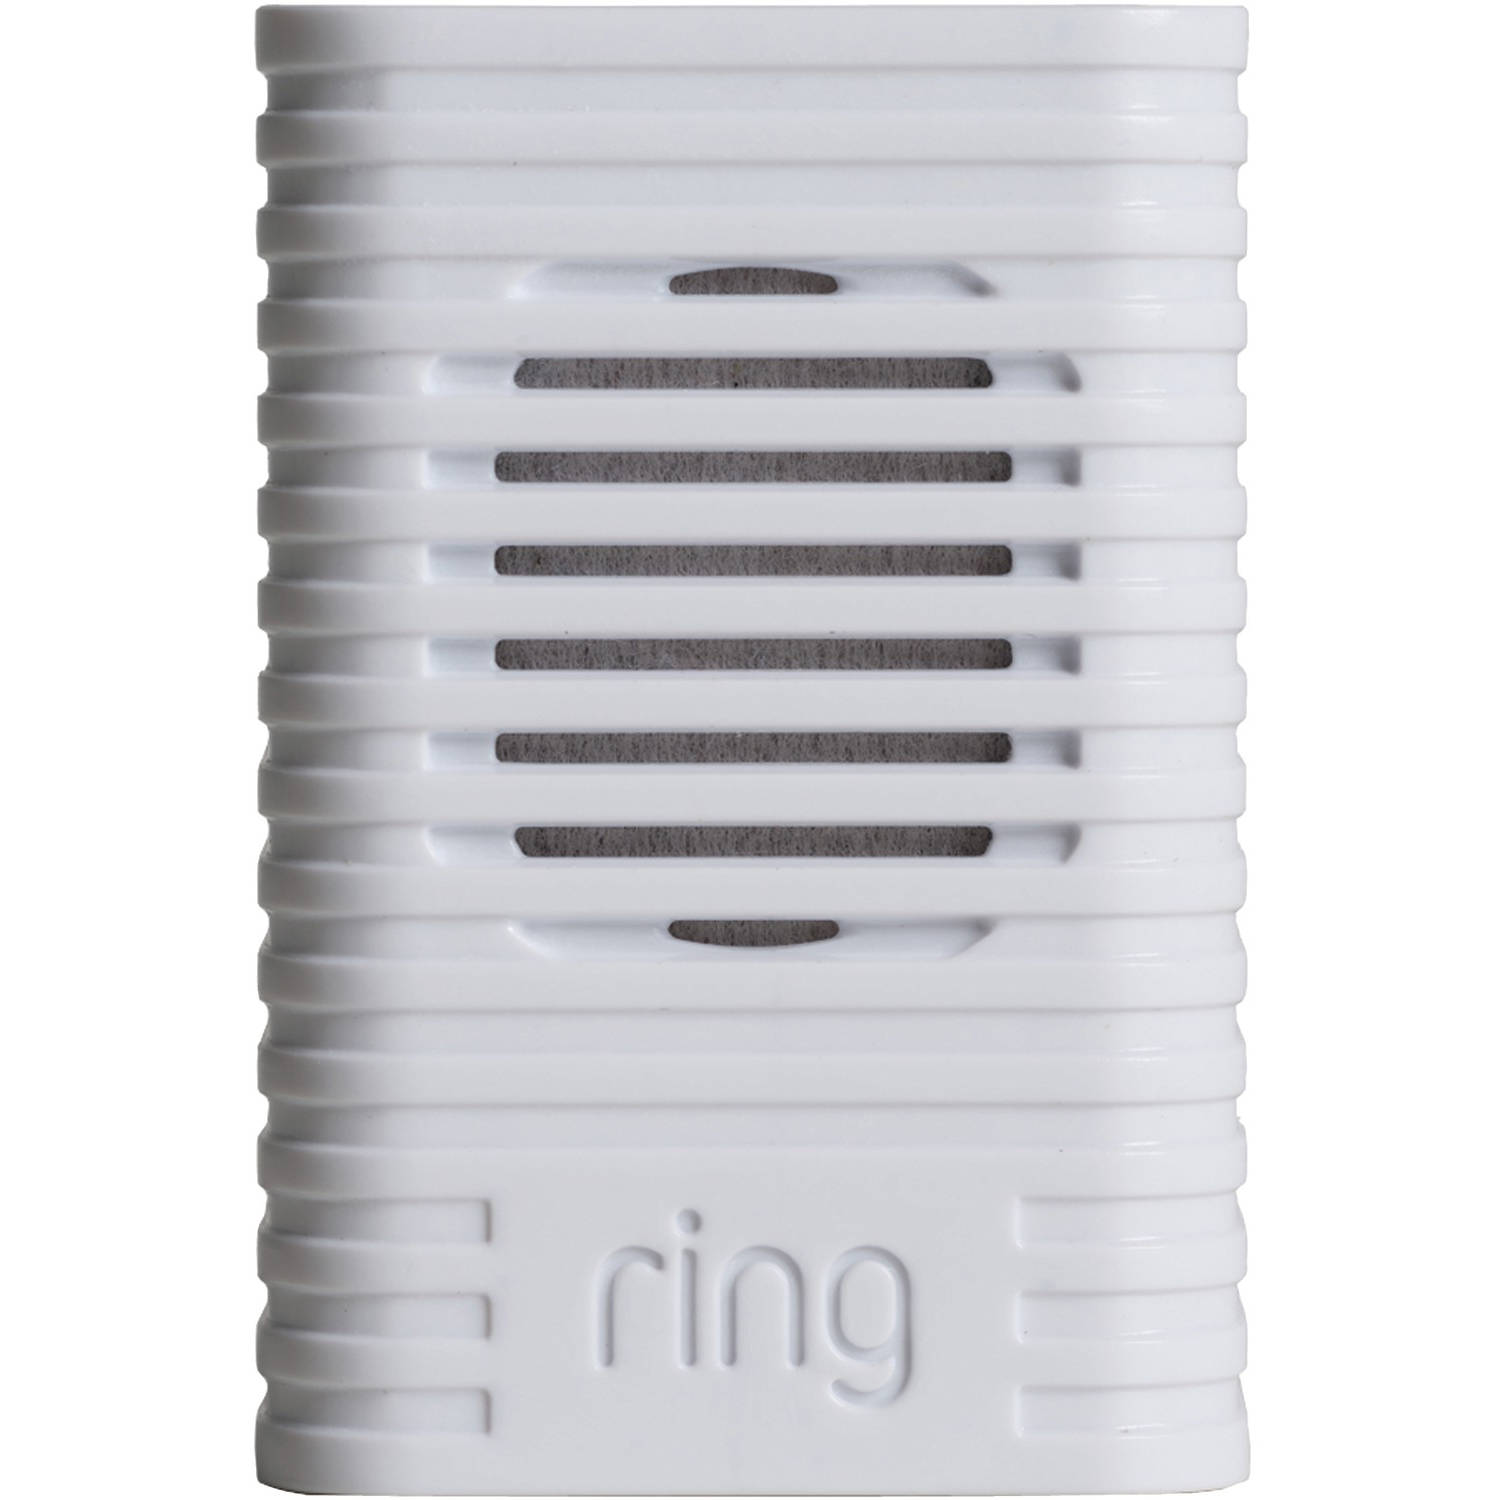 Ring 88CH000FC000 Chime Accessory for Video Doorbell